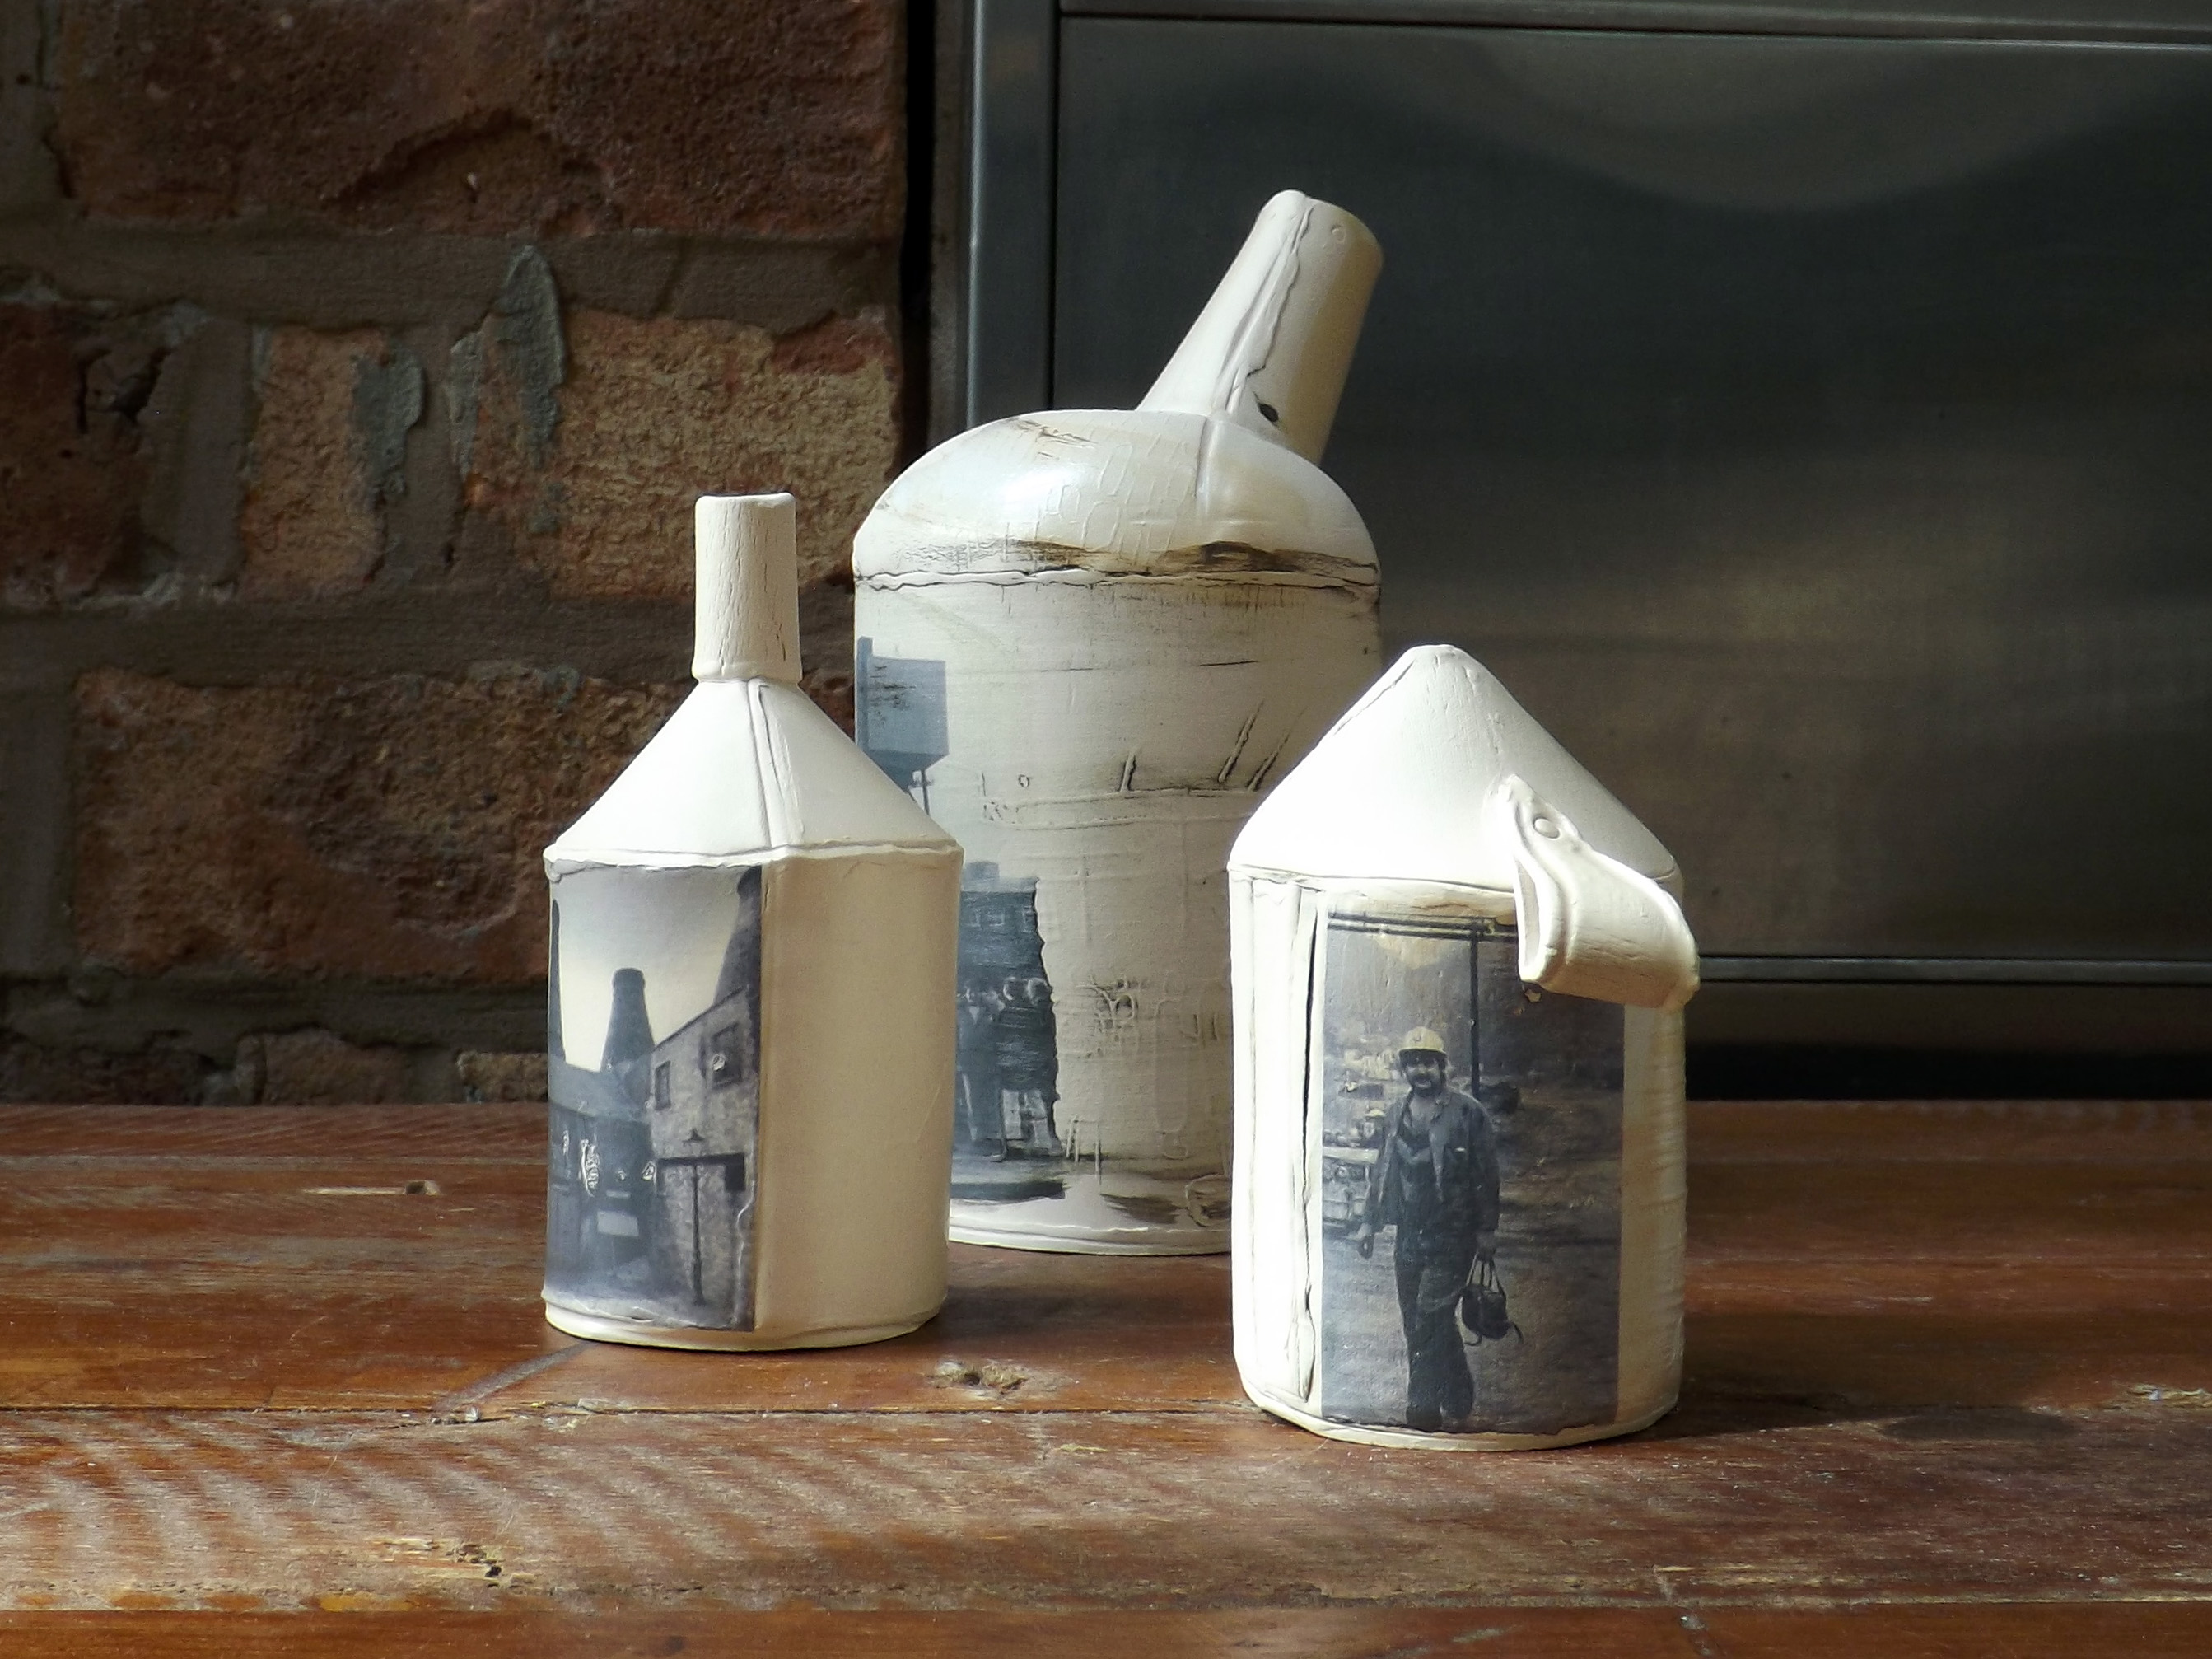 3 Ceramic vessels Stoke-on-Trent